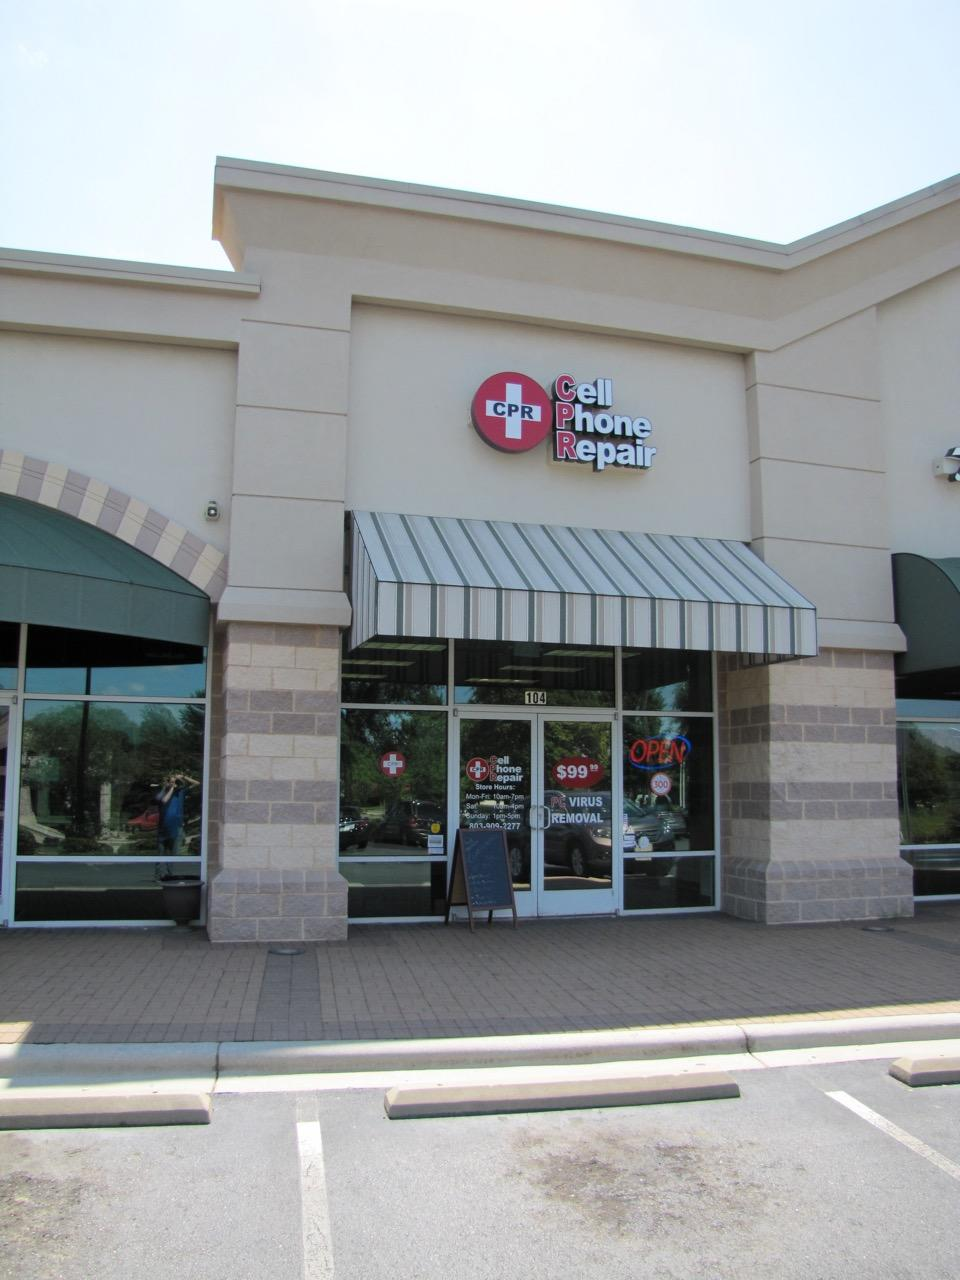 cpr cell phone repair rock hill coupons near me in rock hill 8coupons. Black Bedroom Furniture Sets. Home Design Ideas